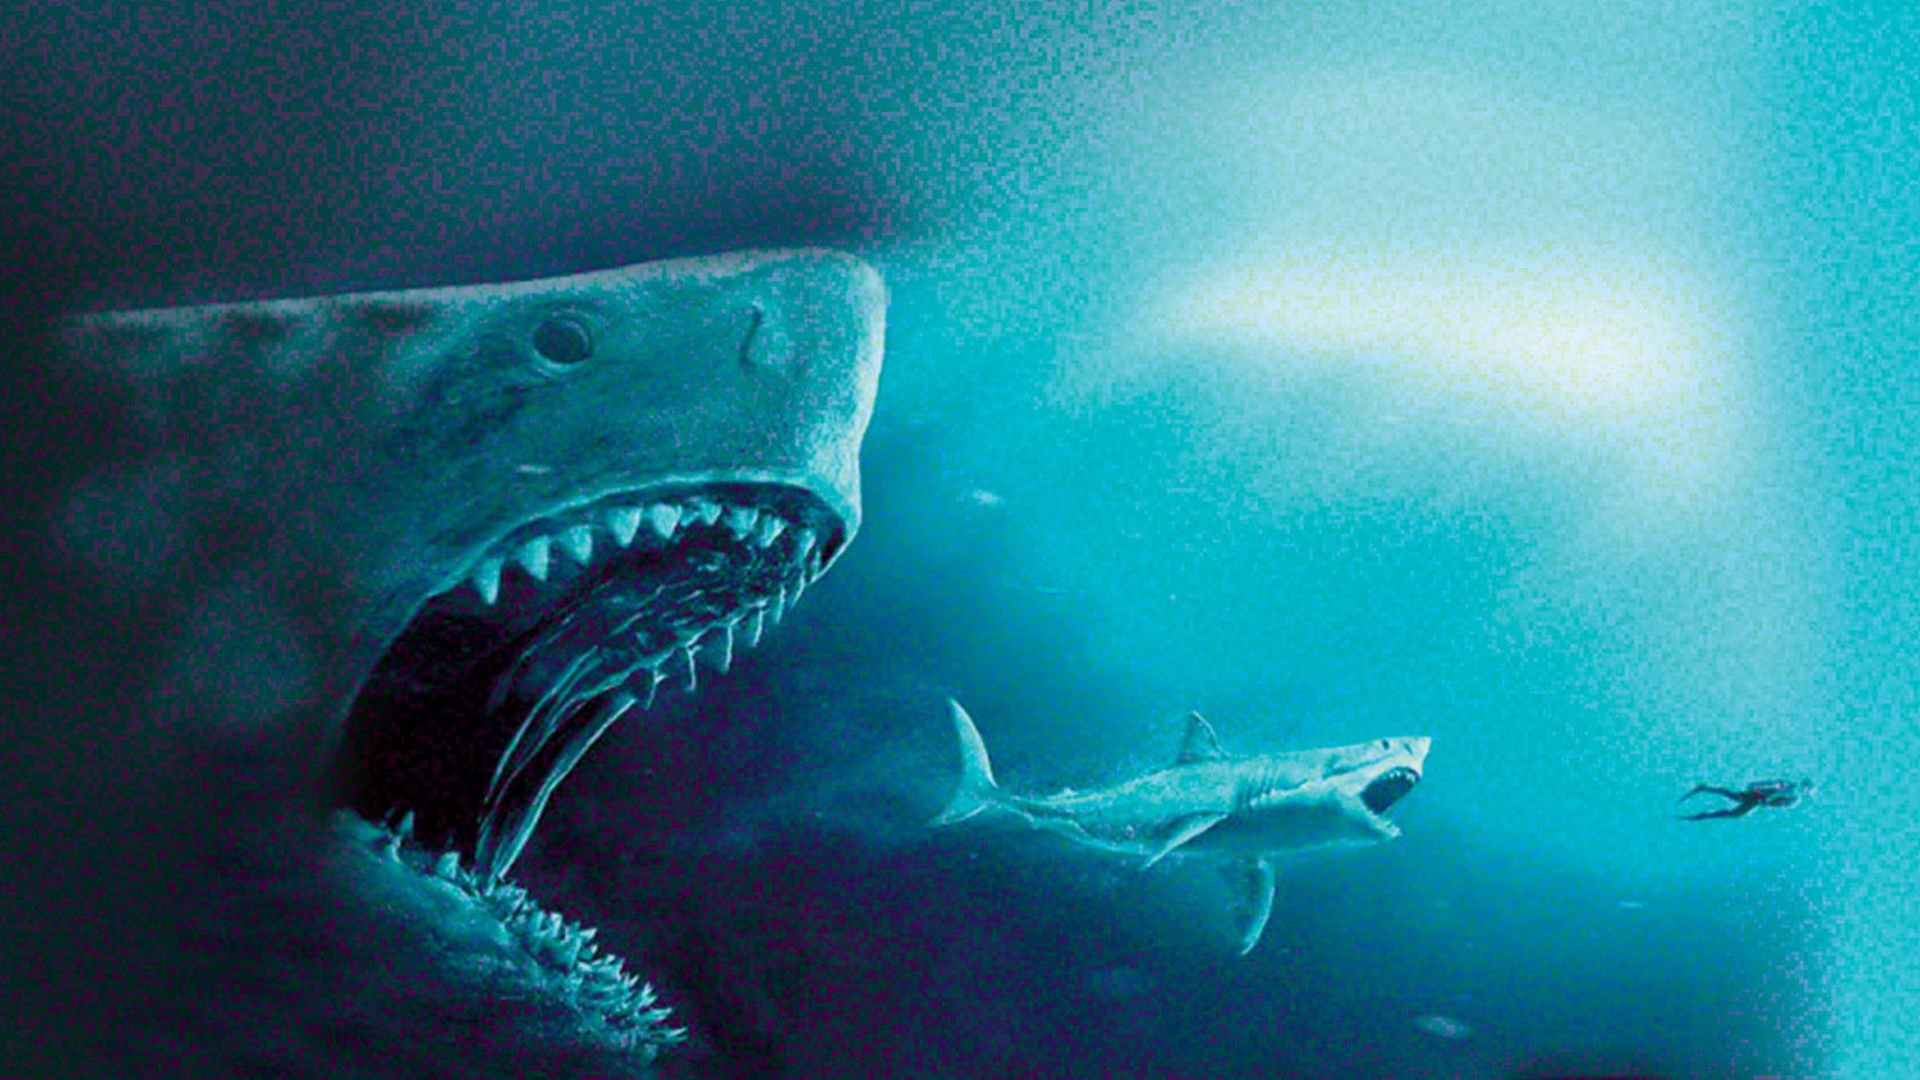 megalodon shark movie - HD 1920×1080